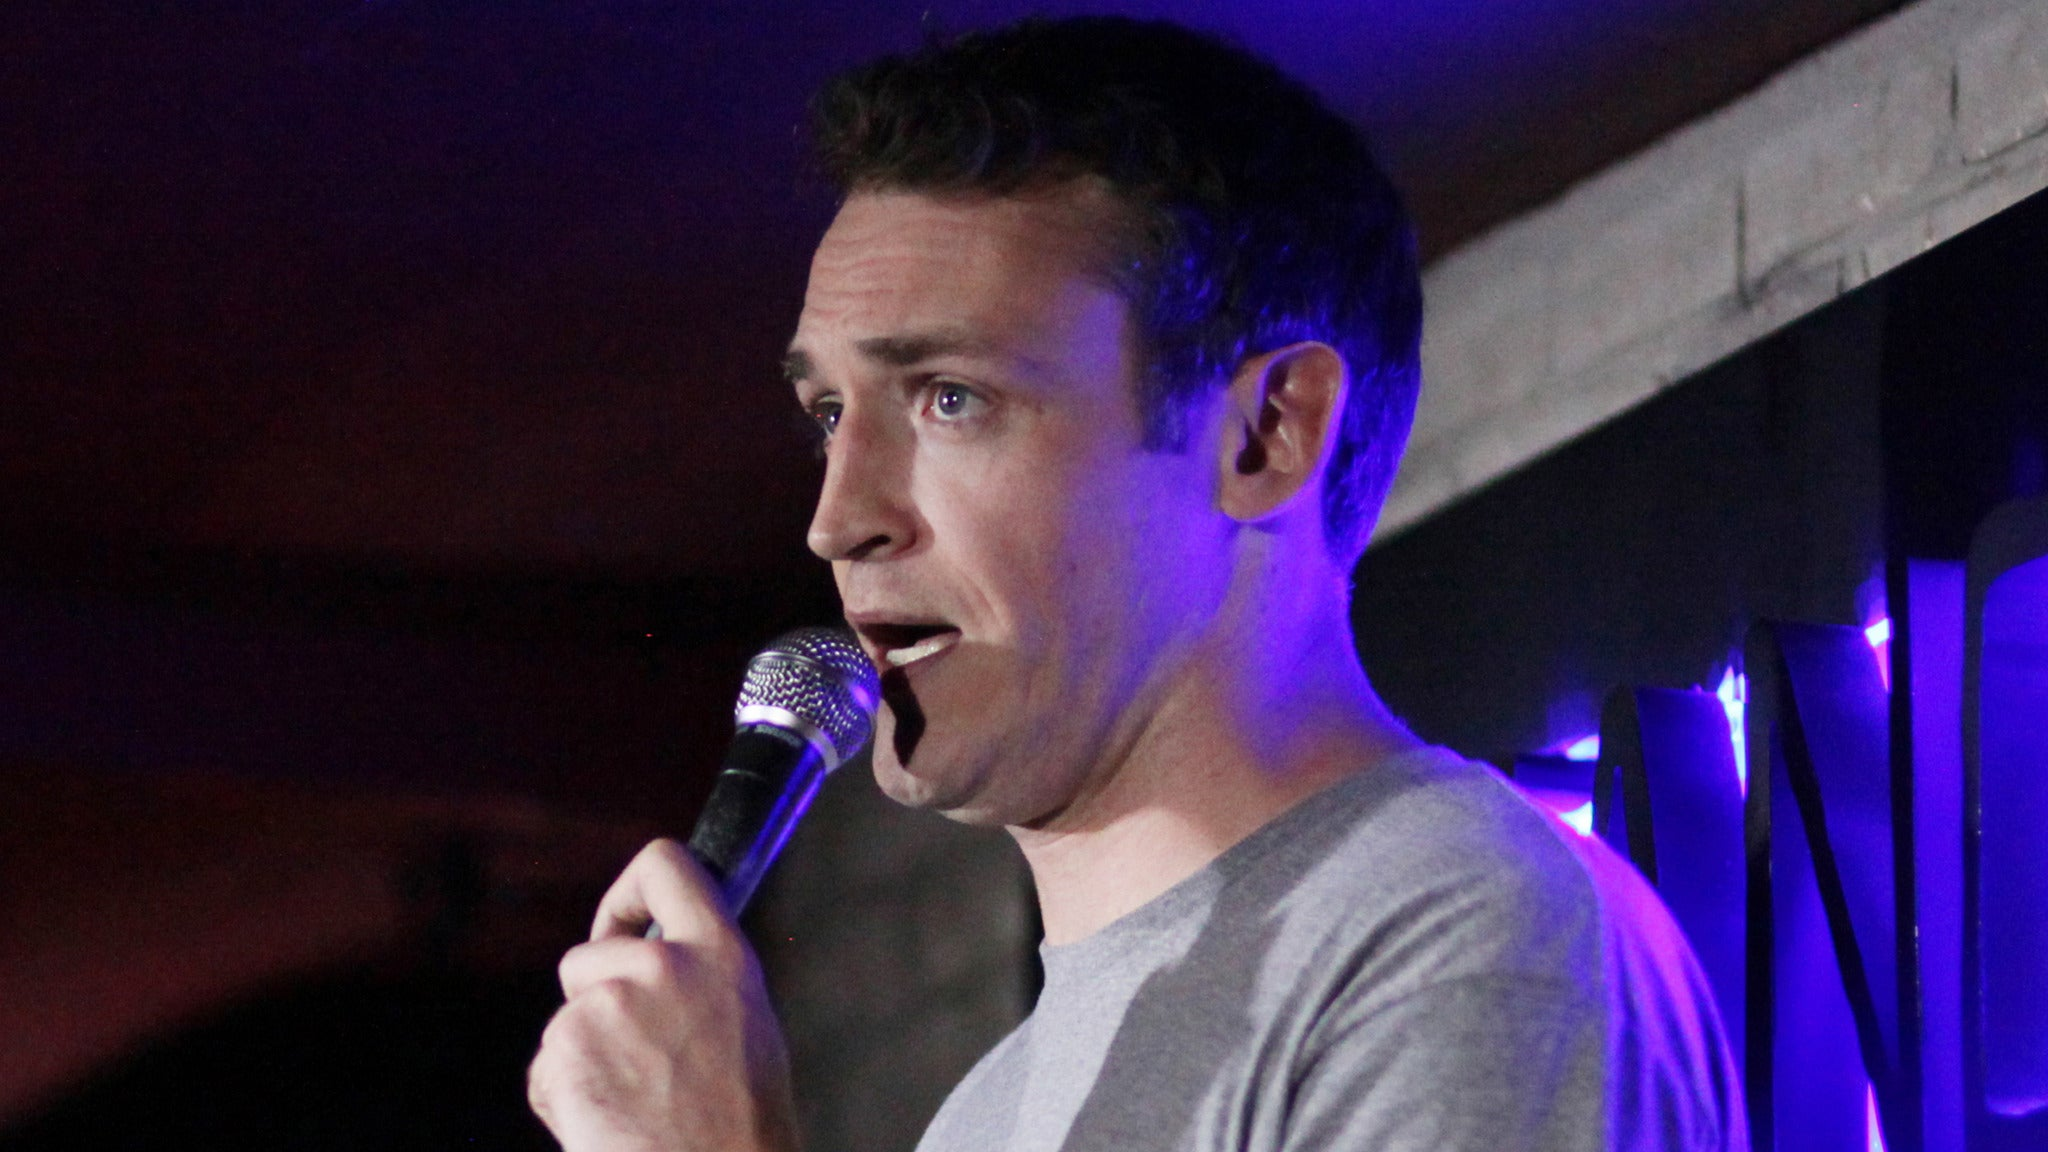 Dan Soder at Punch Line Comedy Club - San Francisco